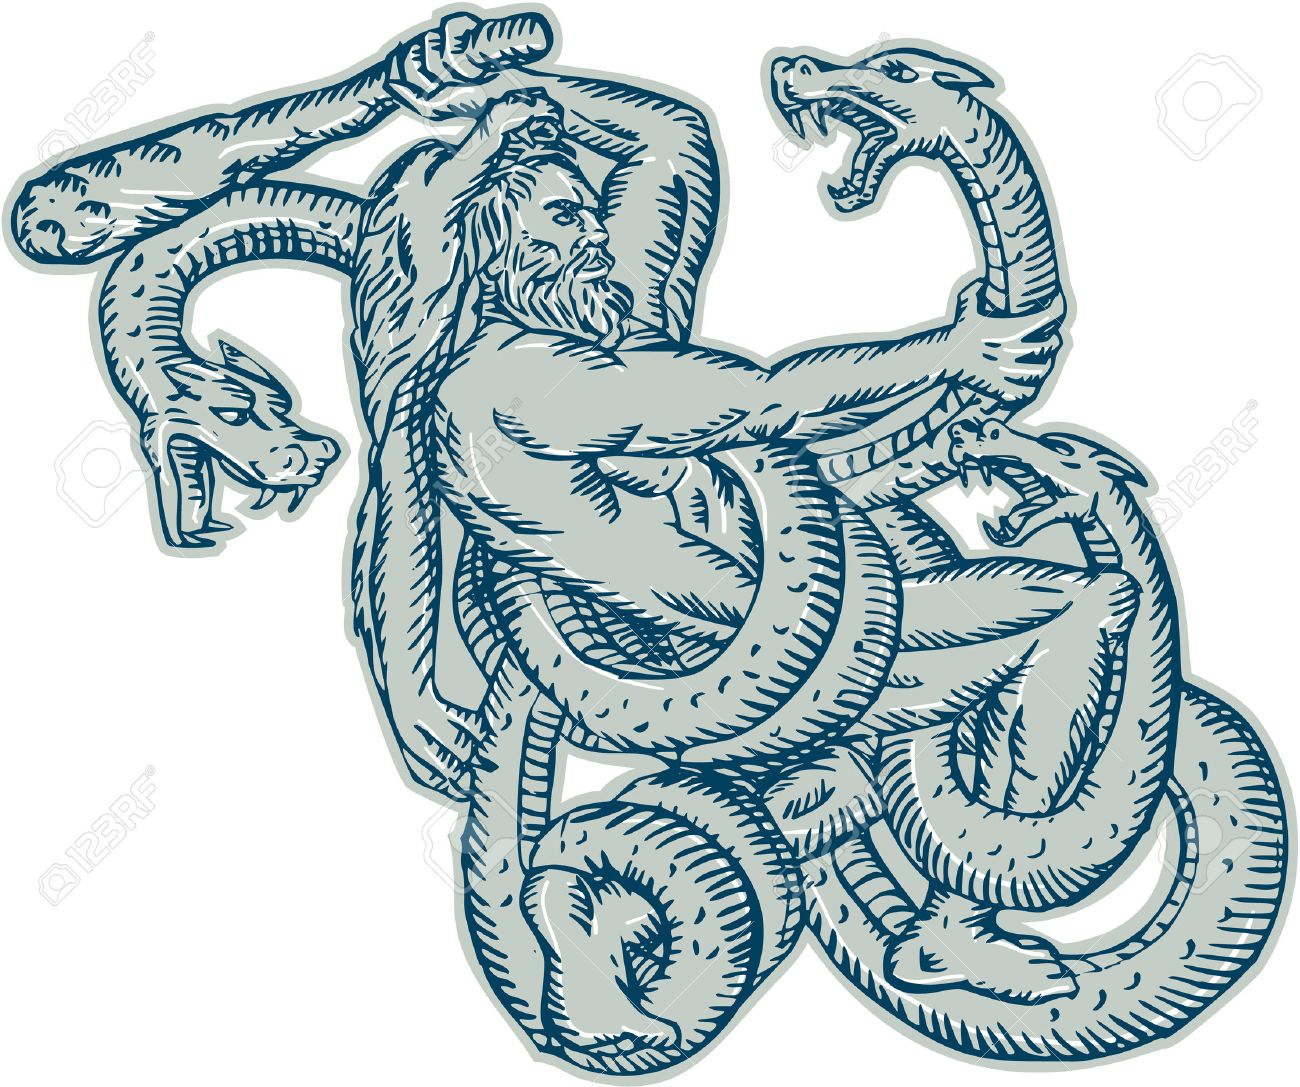 Etching engraving handmade style illustration of Hercules or Heracles of Greek mythology wearing a lion skin head fighting a Lernaean Hydra or three headed serpent on isolated white background. Stock Vector - 38680336